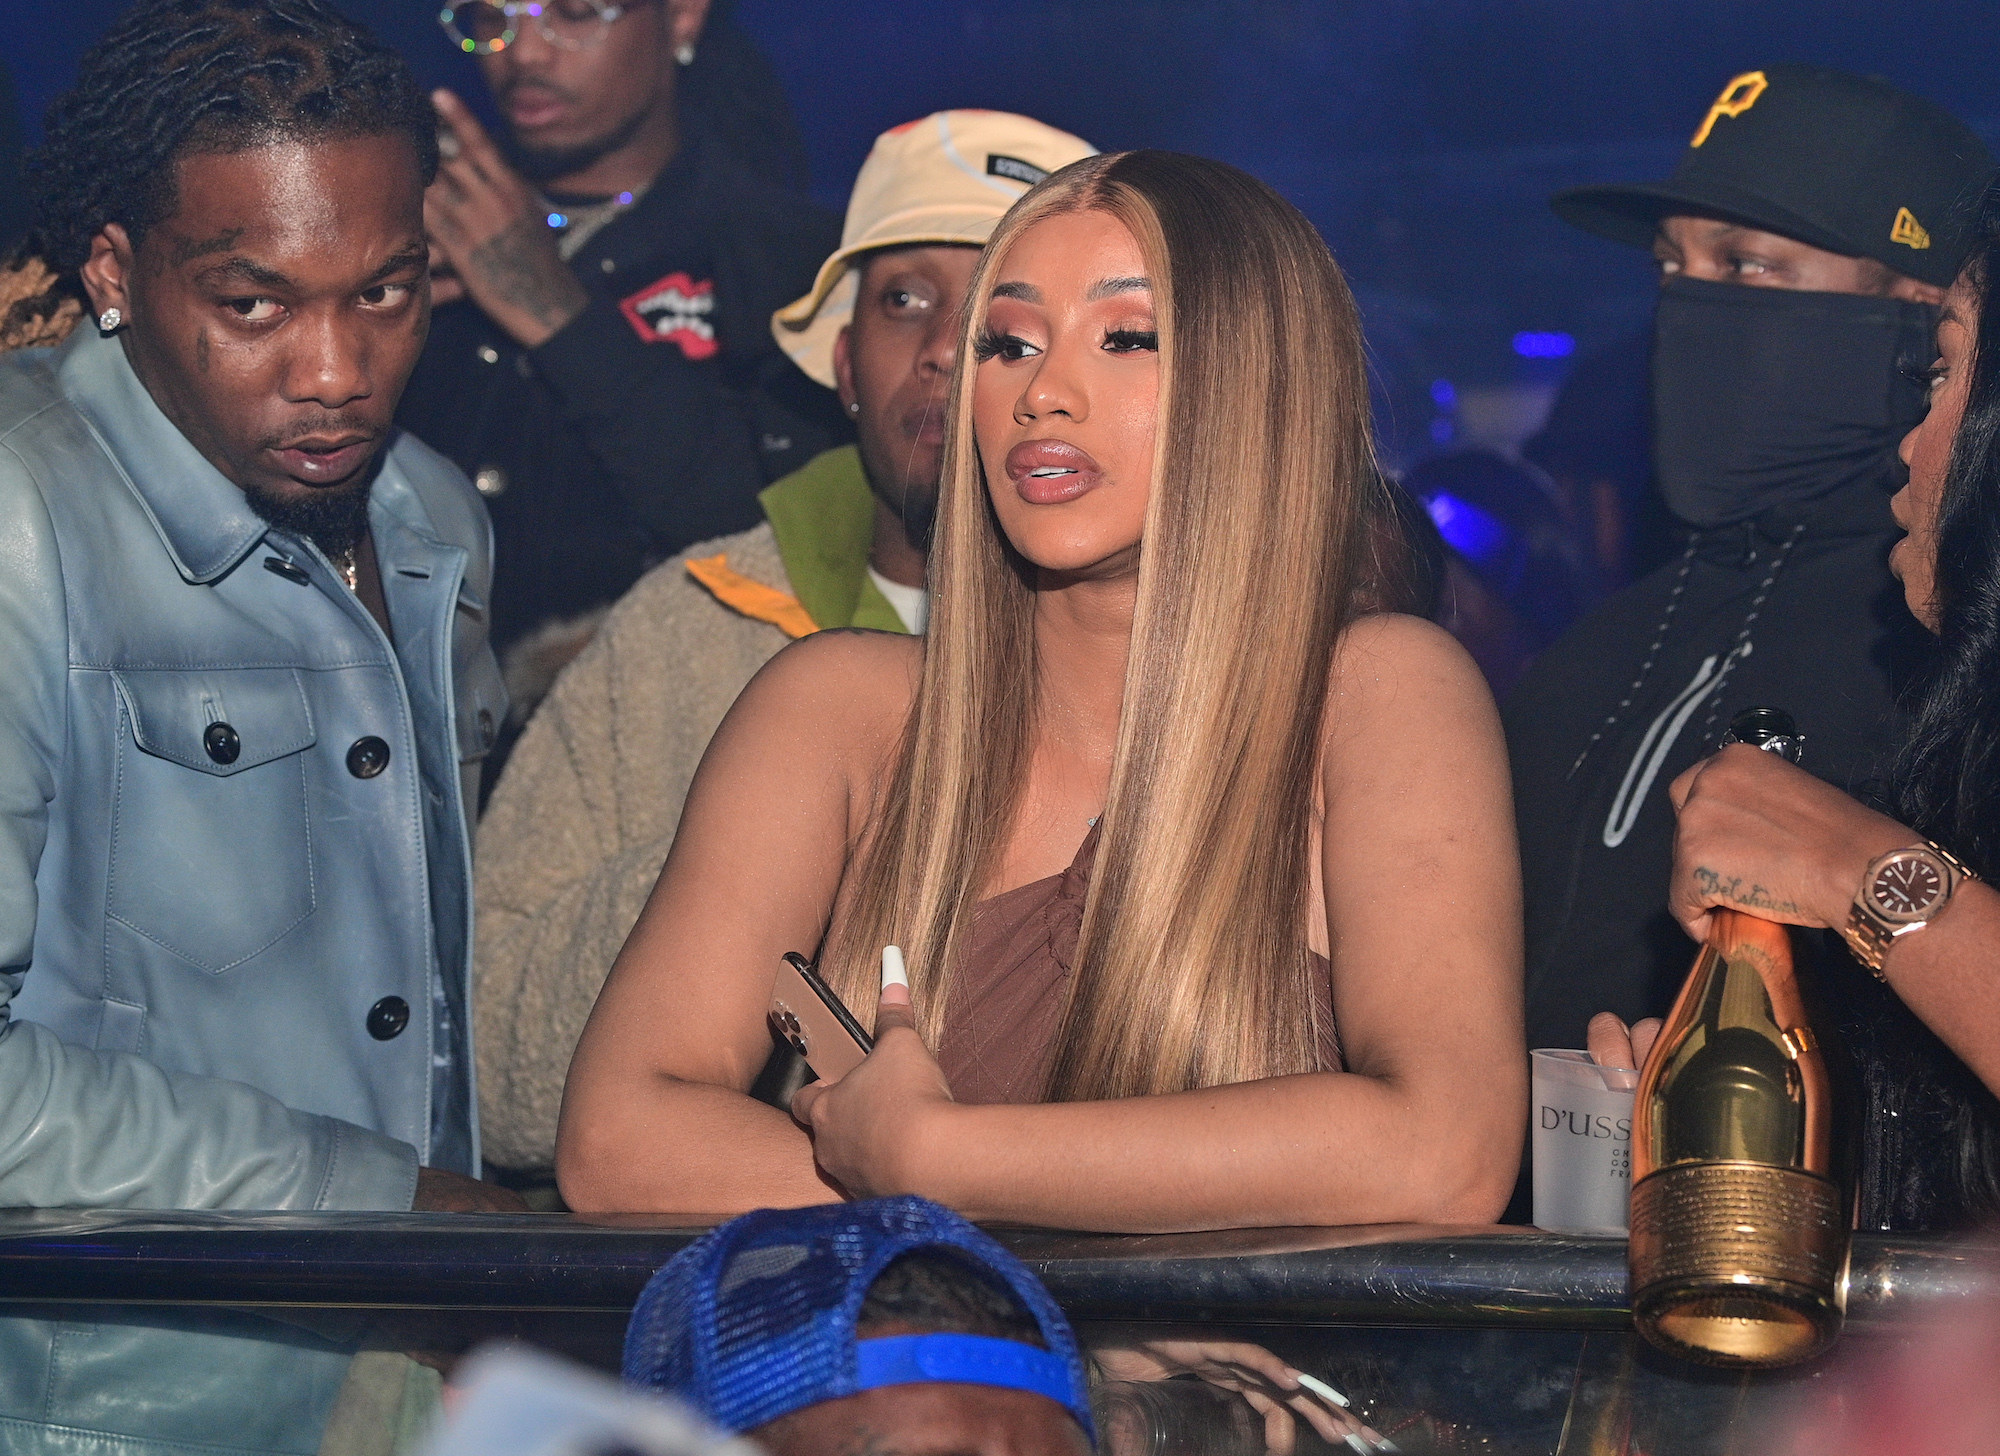 Cardi B sits at the bar alongside Offset at the Offset Birthday Celebration as their surrounded by a crowd of people